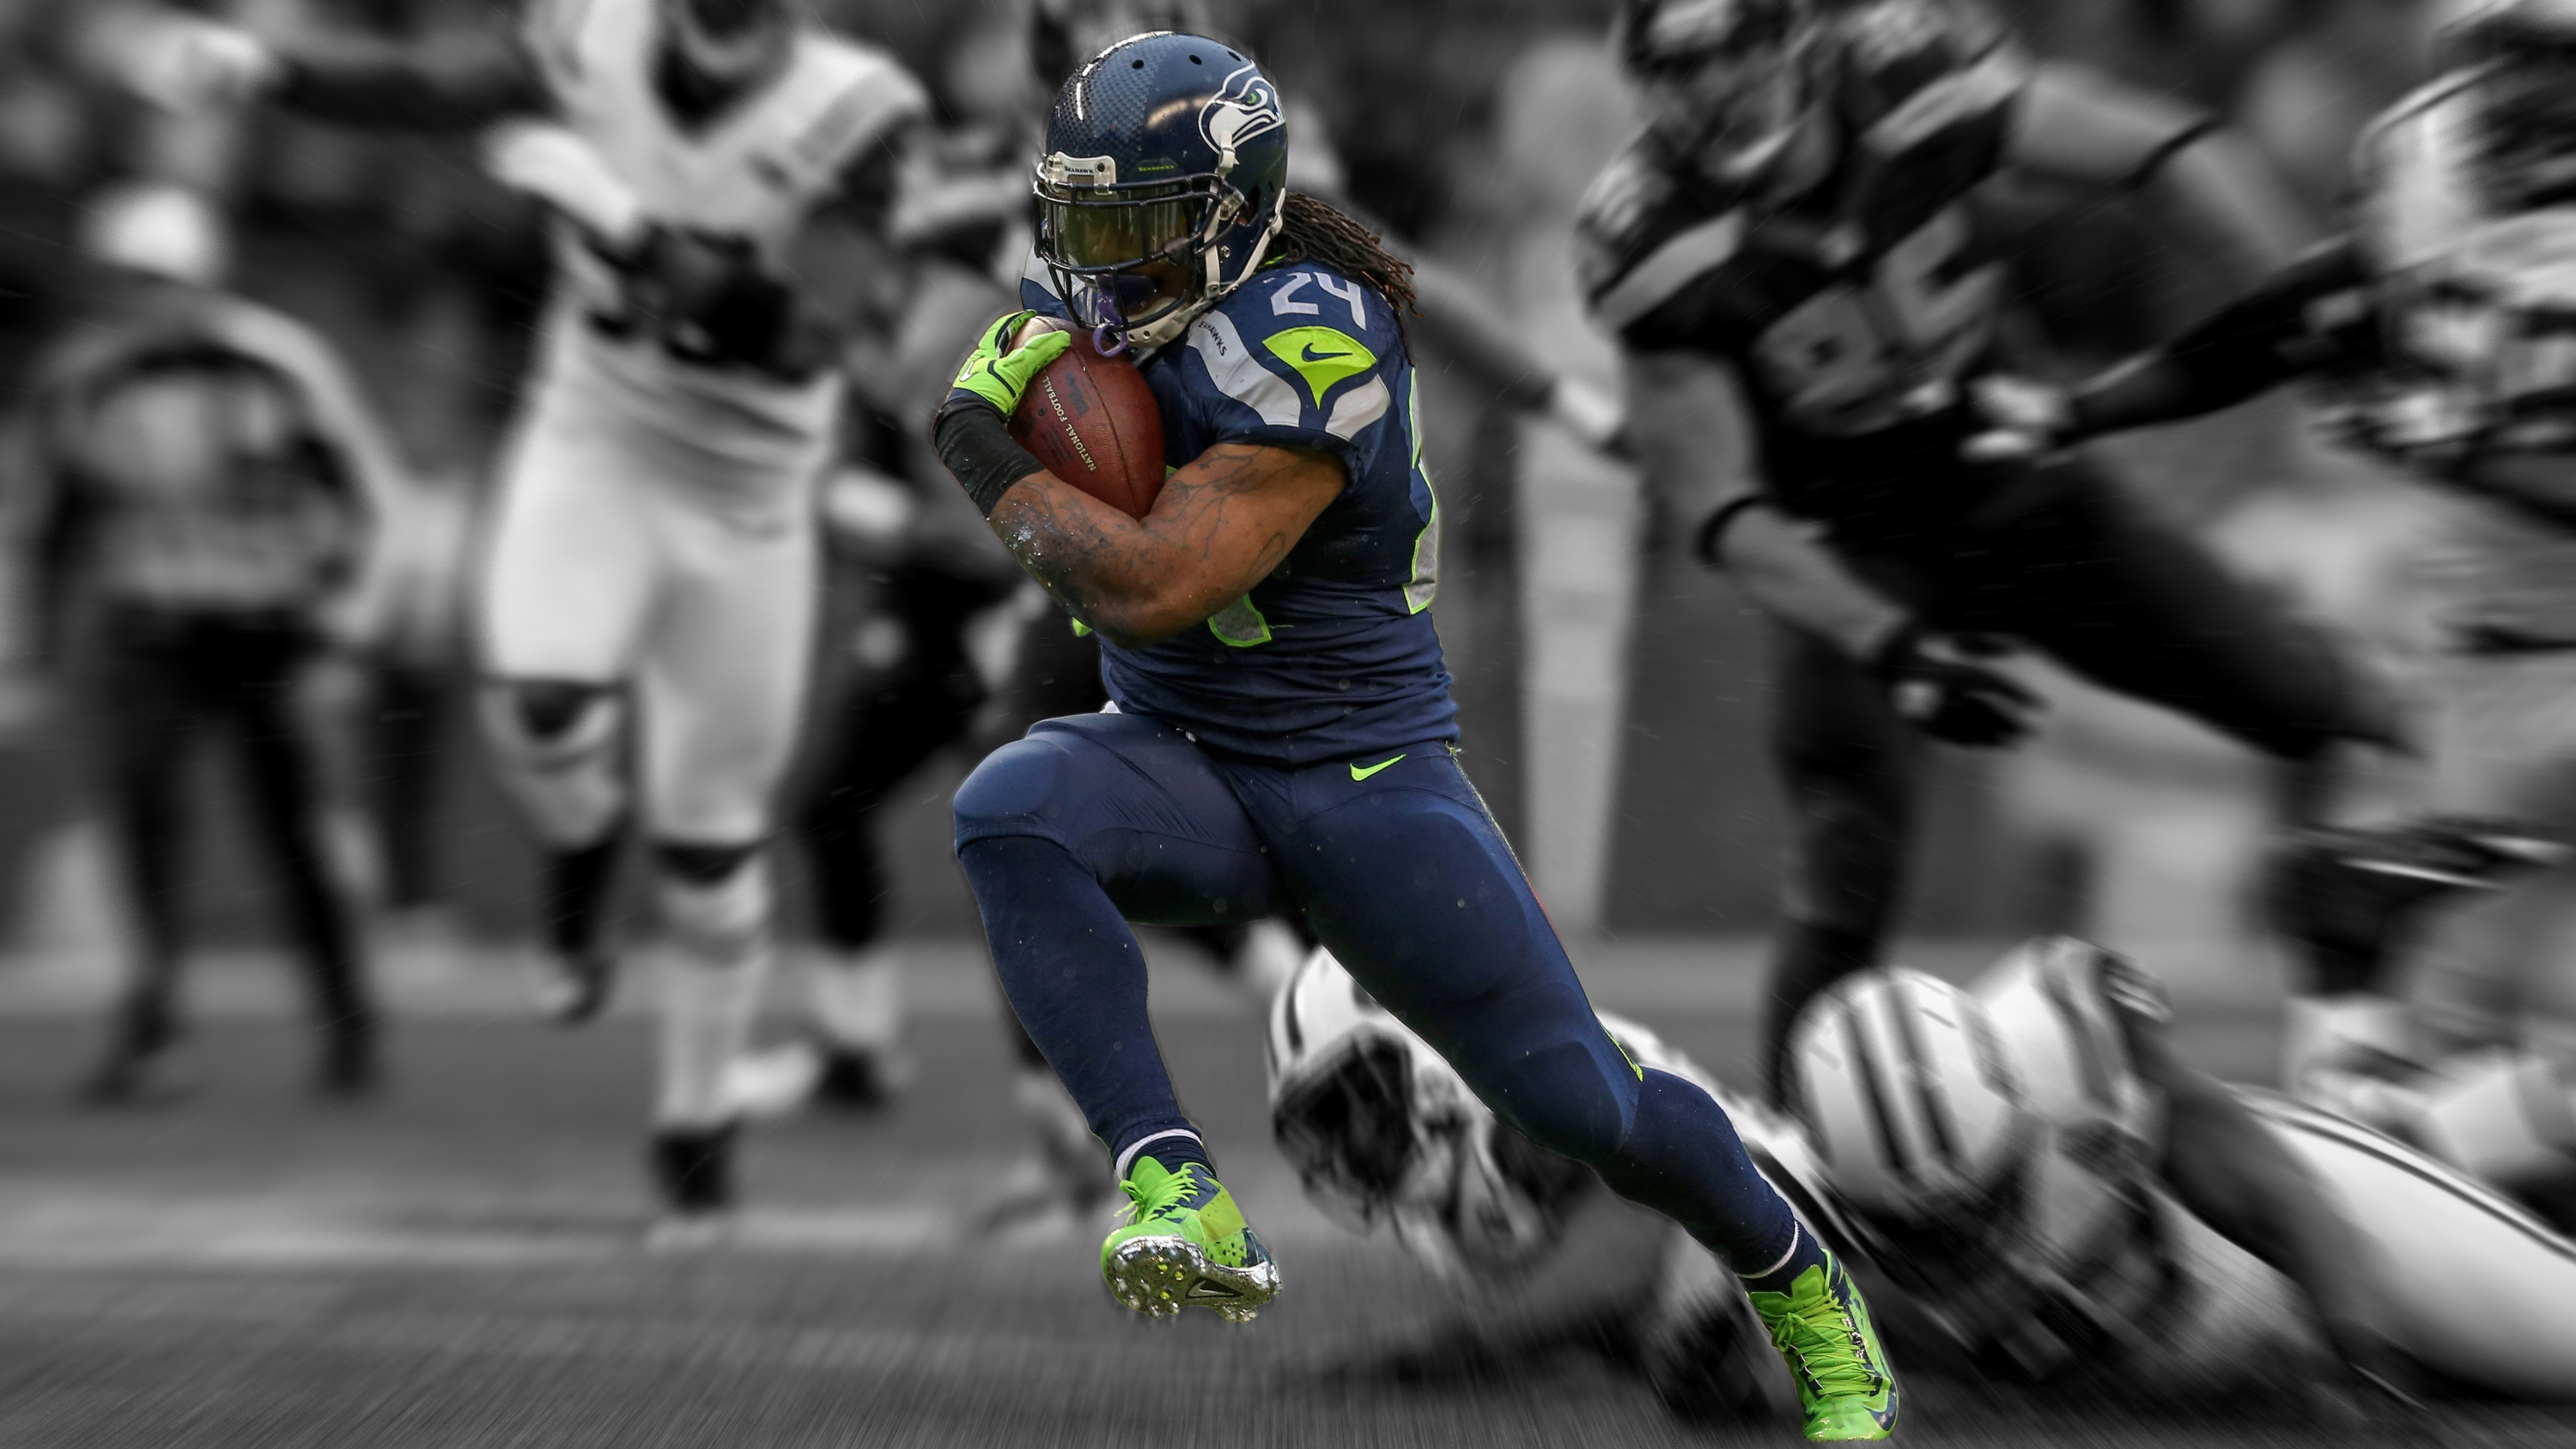 Marshawn Lynch Seahawks Wallpaper - NFL Photo (32784736) - Fanpop